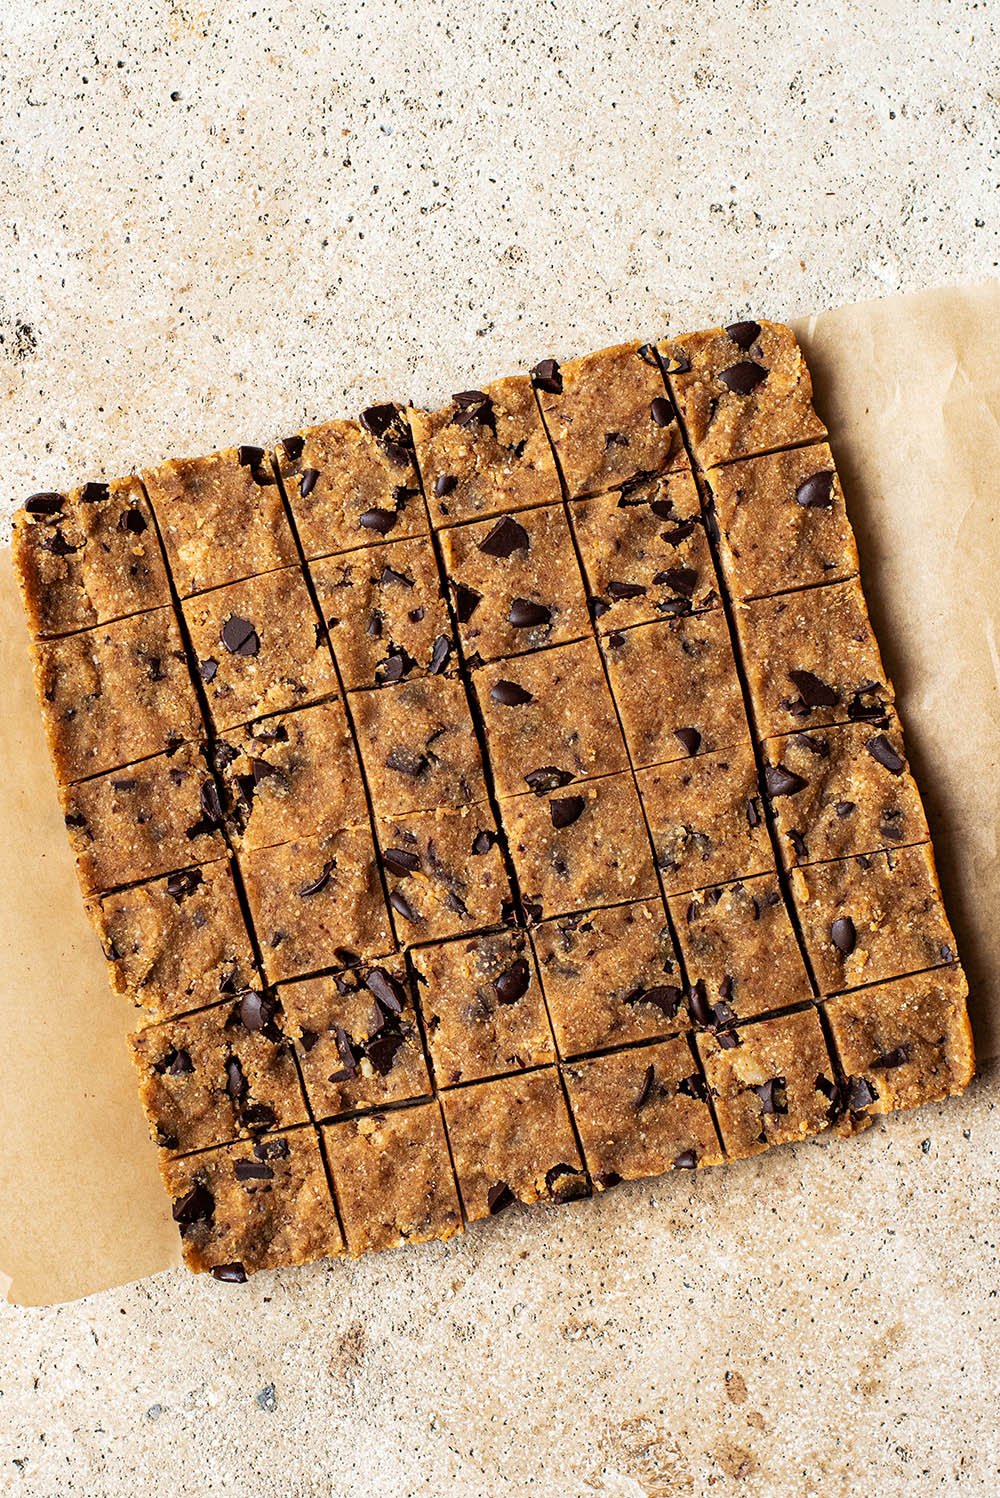 A slab of cookie dough cut into 36 small squares.